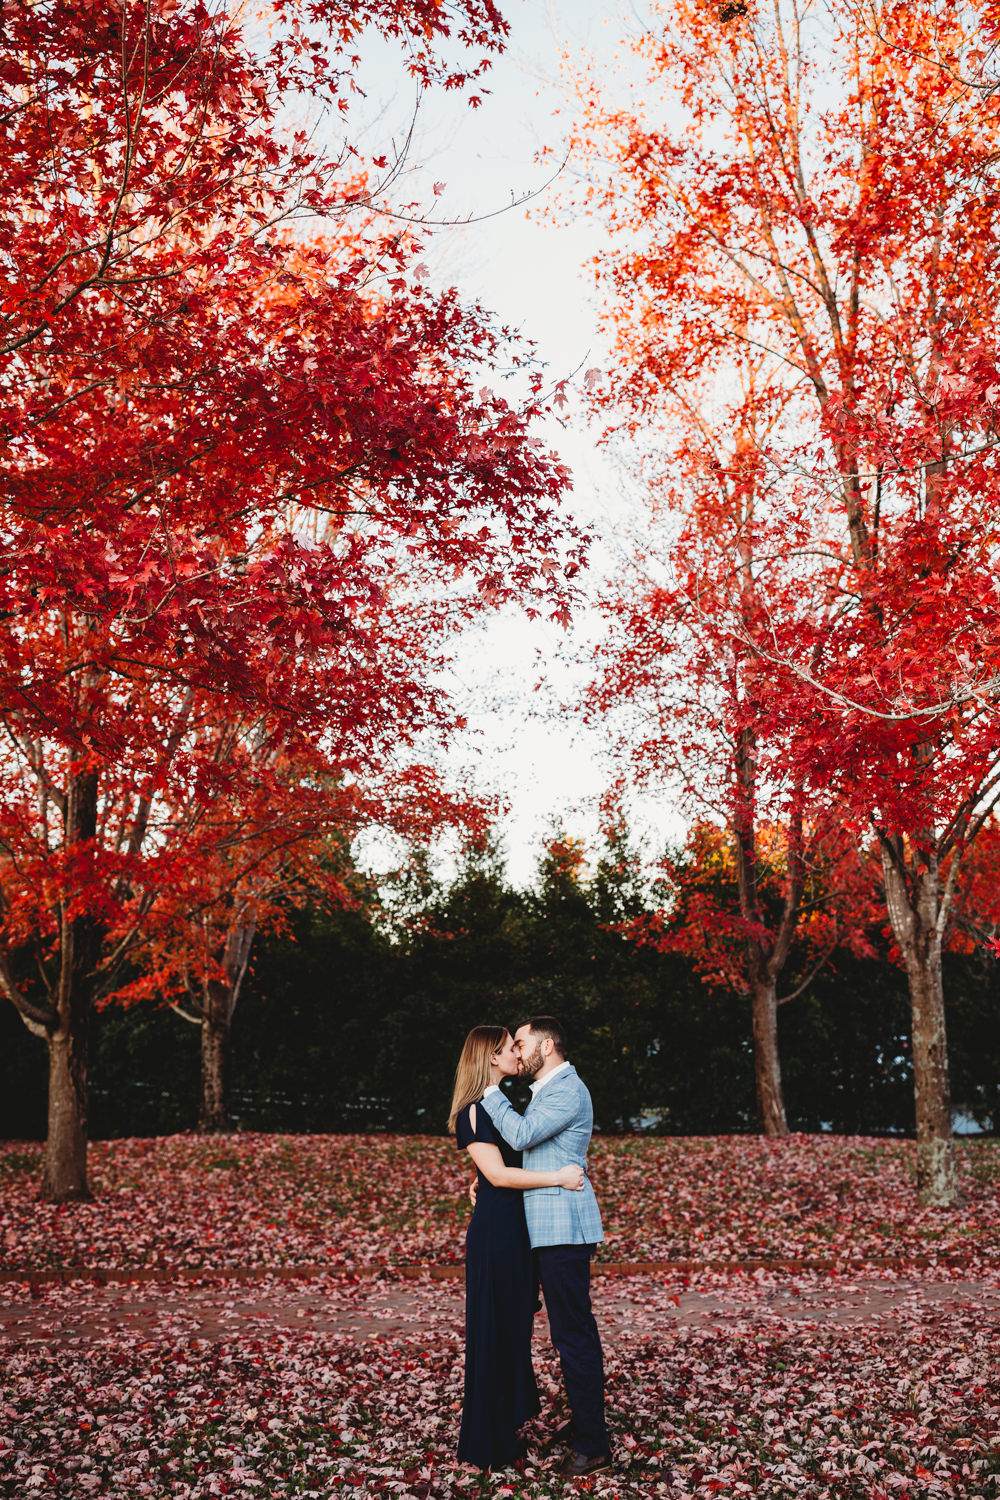 Daniel Stowe Botanical Gardens engagement, Daniel Stowe Botanical Gardens wedding, Daniel Stowe Botanical gardens, North Carolina Engagement Photographer, Charlotte NC Engagement, North Carolina engagement Picture ideas, Charlotte NC wedding Photographer, engagement locations in Charlotte NC, engagement inspiration, Best places for an engagement session in Charlotte NC, North Carolina Engagement Photos, Asheville NC Engagement Photos, fall engagement photos, winter engagement photos